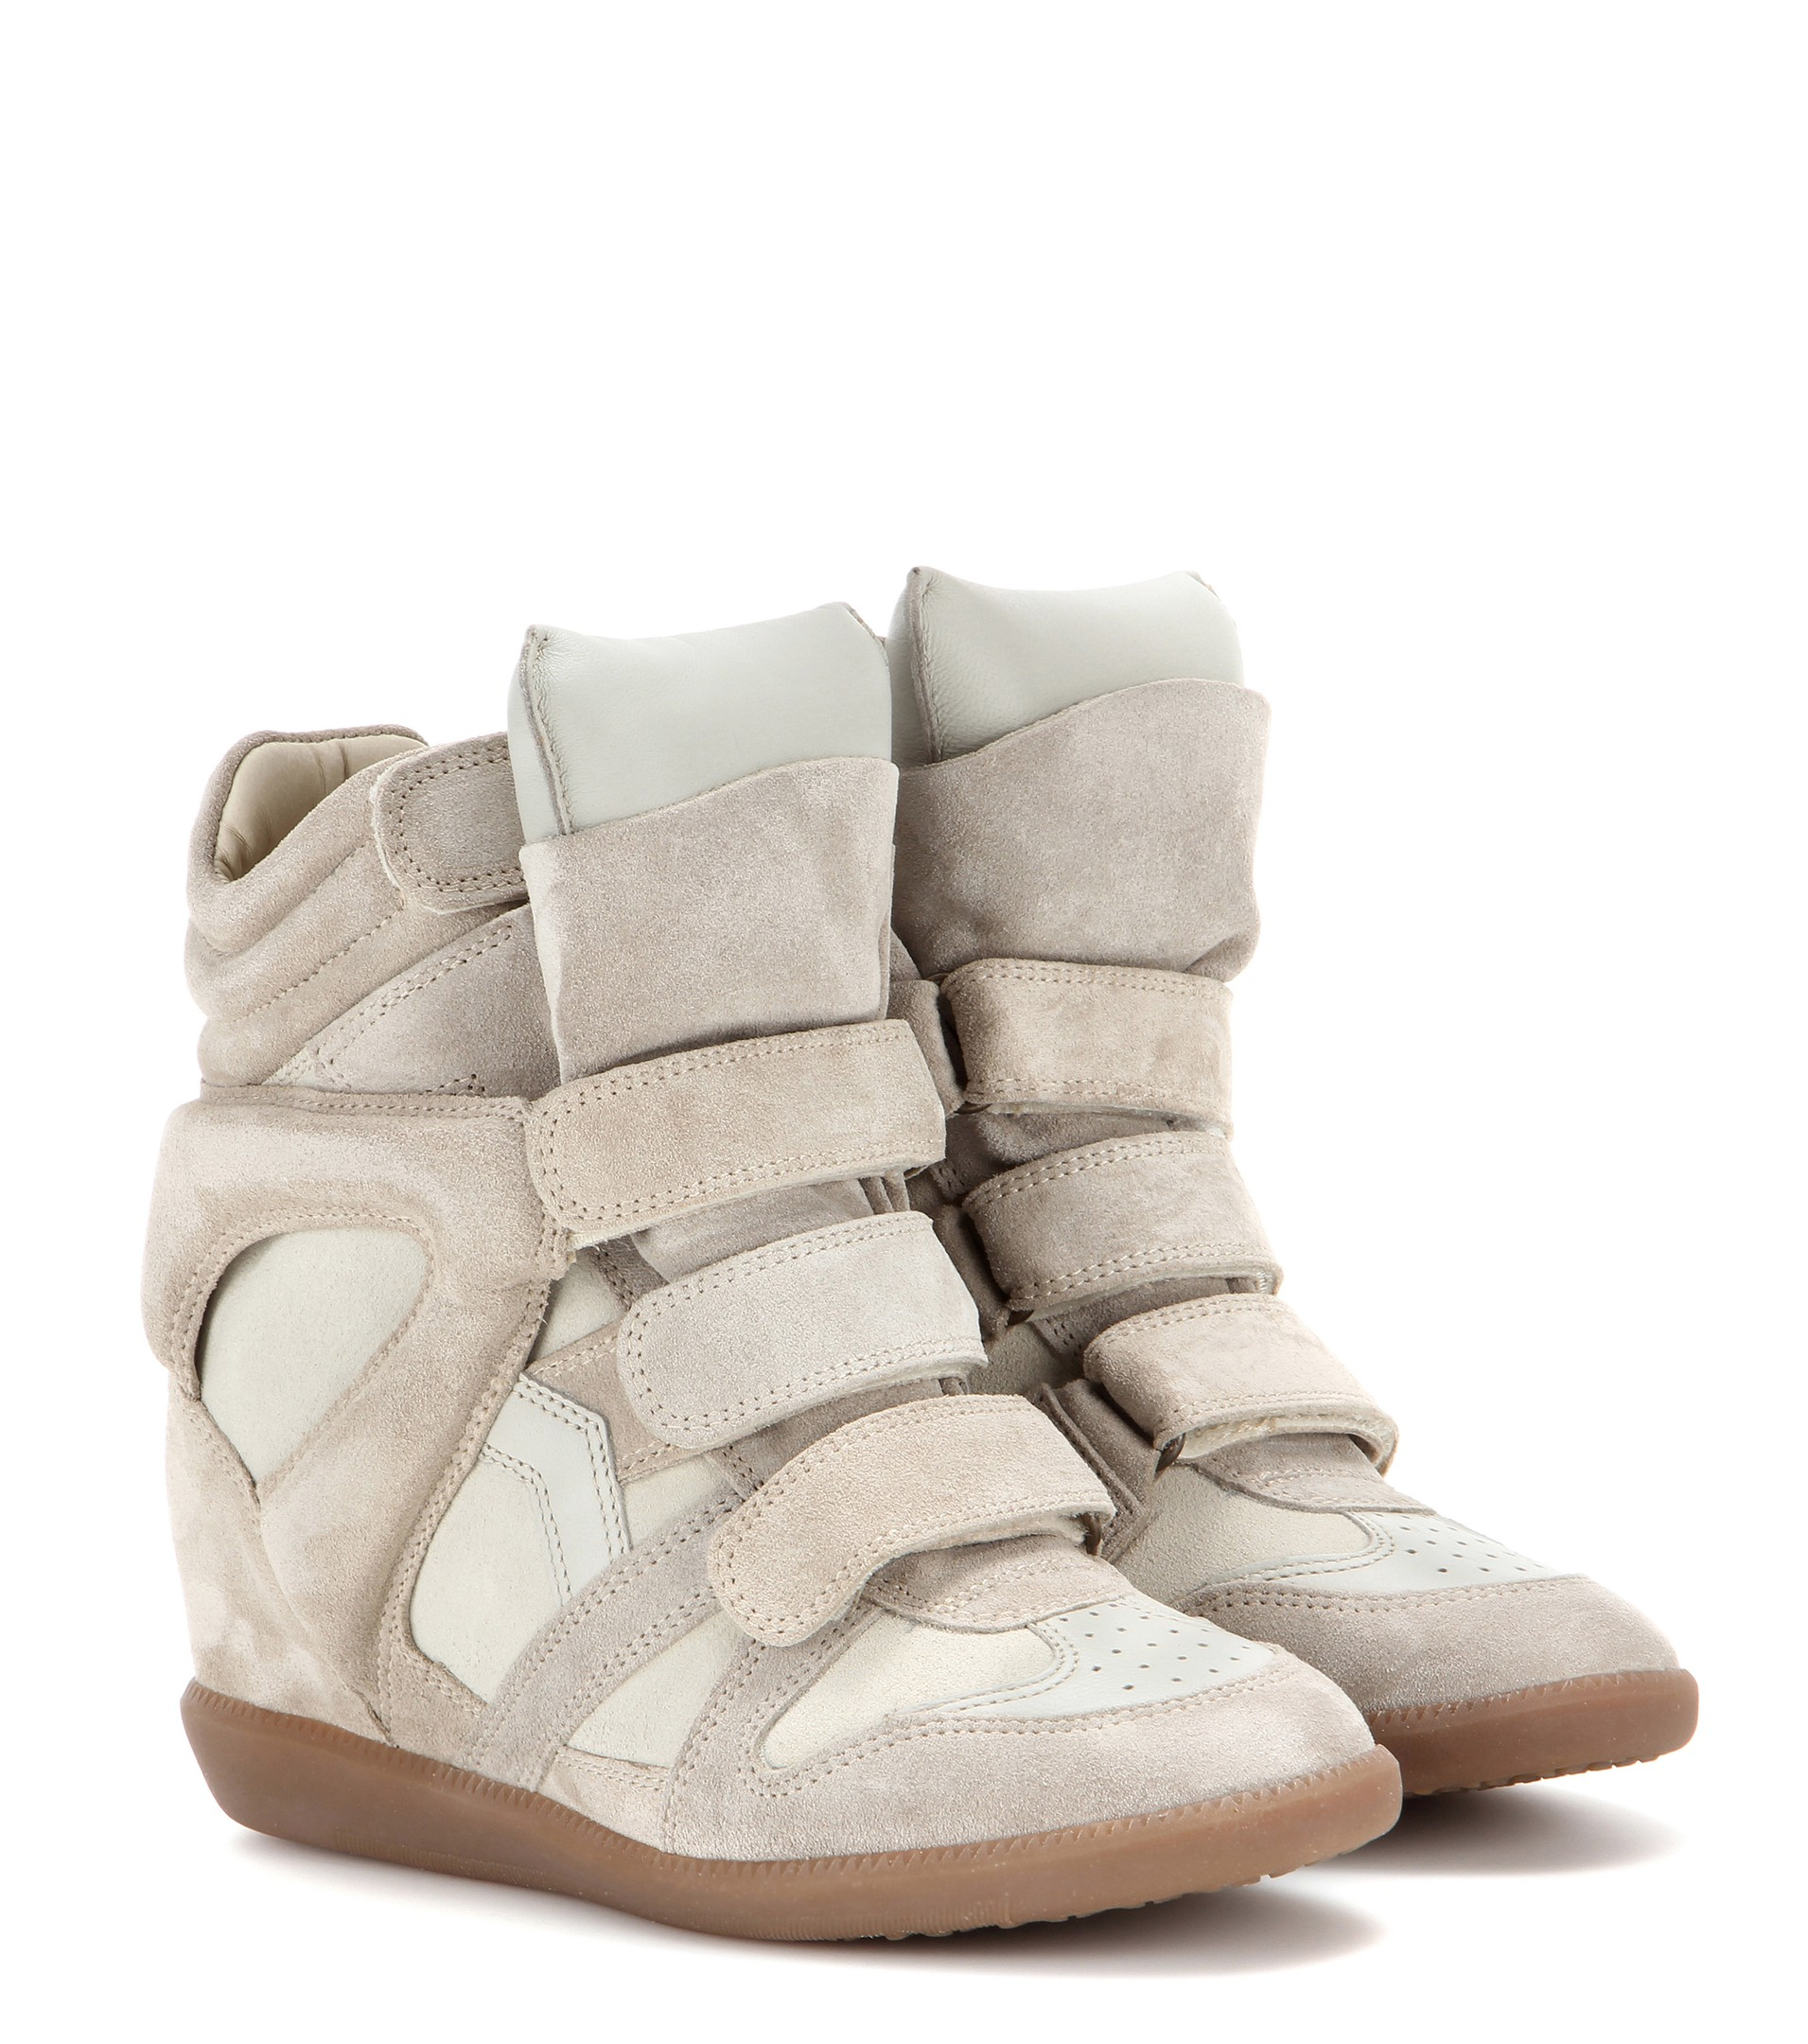 84dd437c Isabel Marant Étoile Bekett Leather and Suede Sneakers in Natural - Lyst